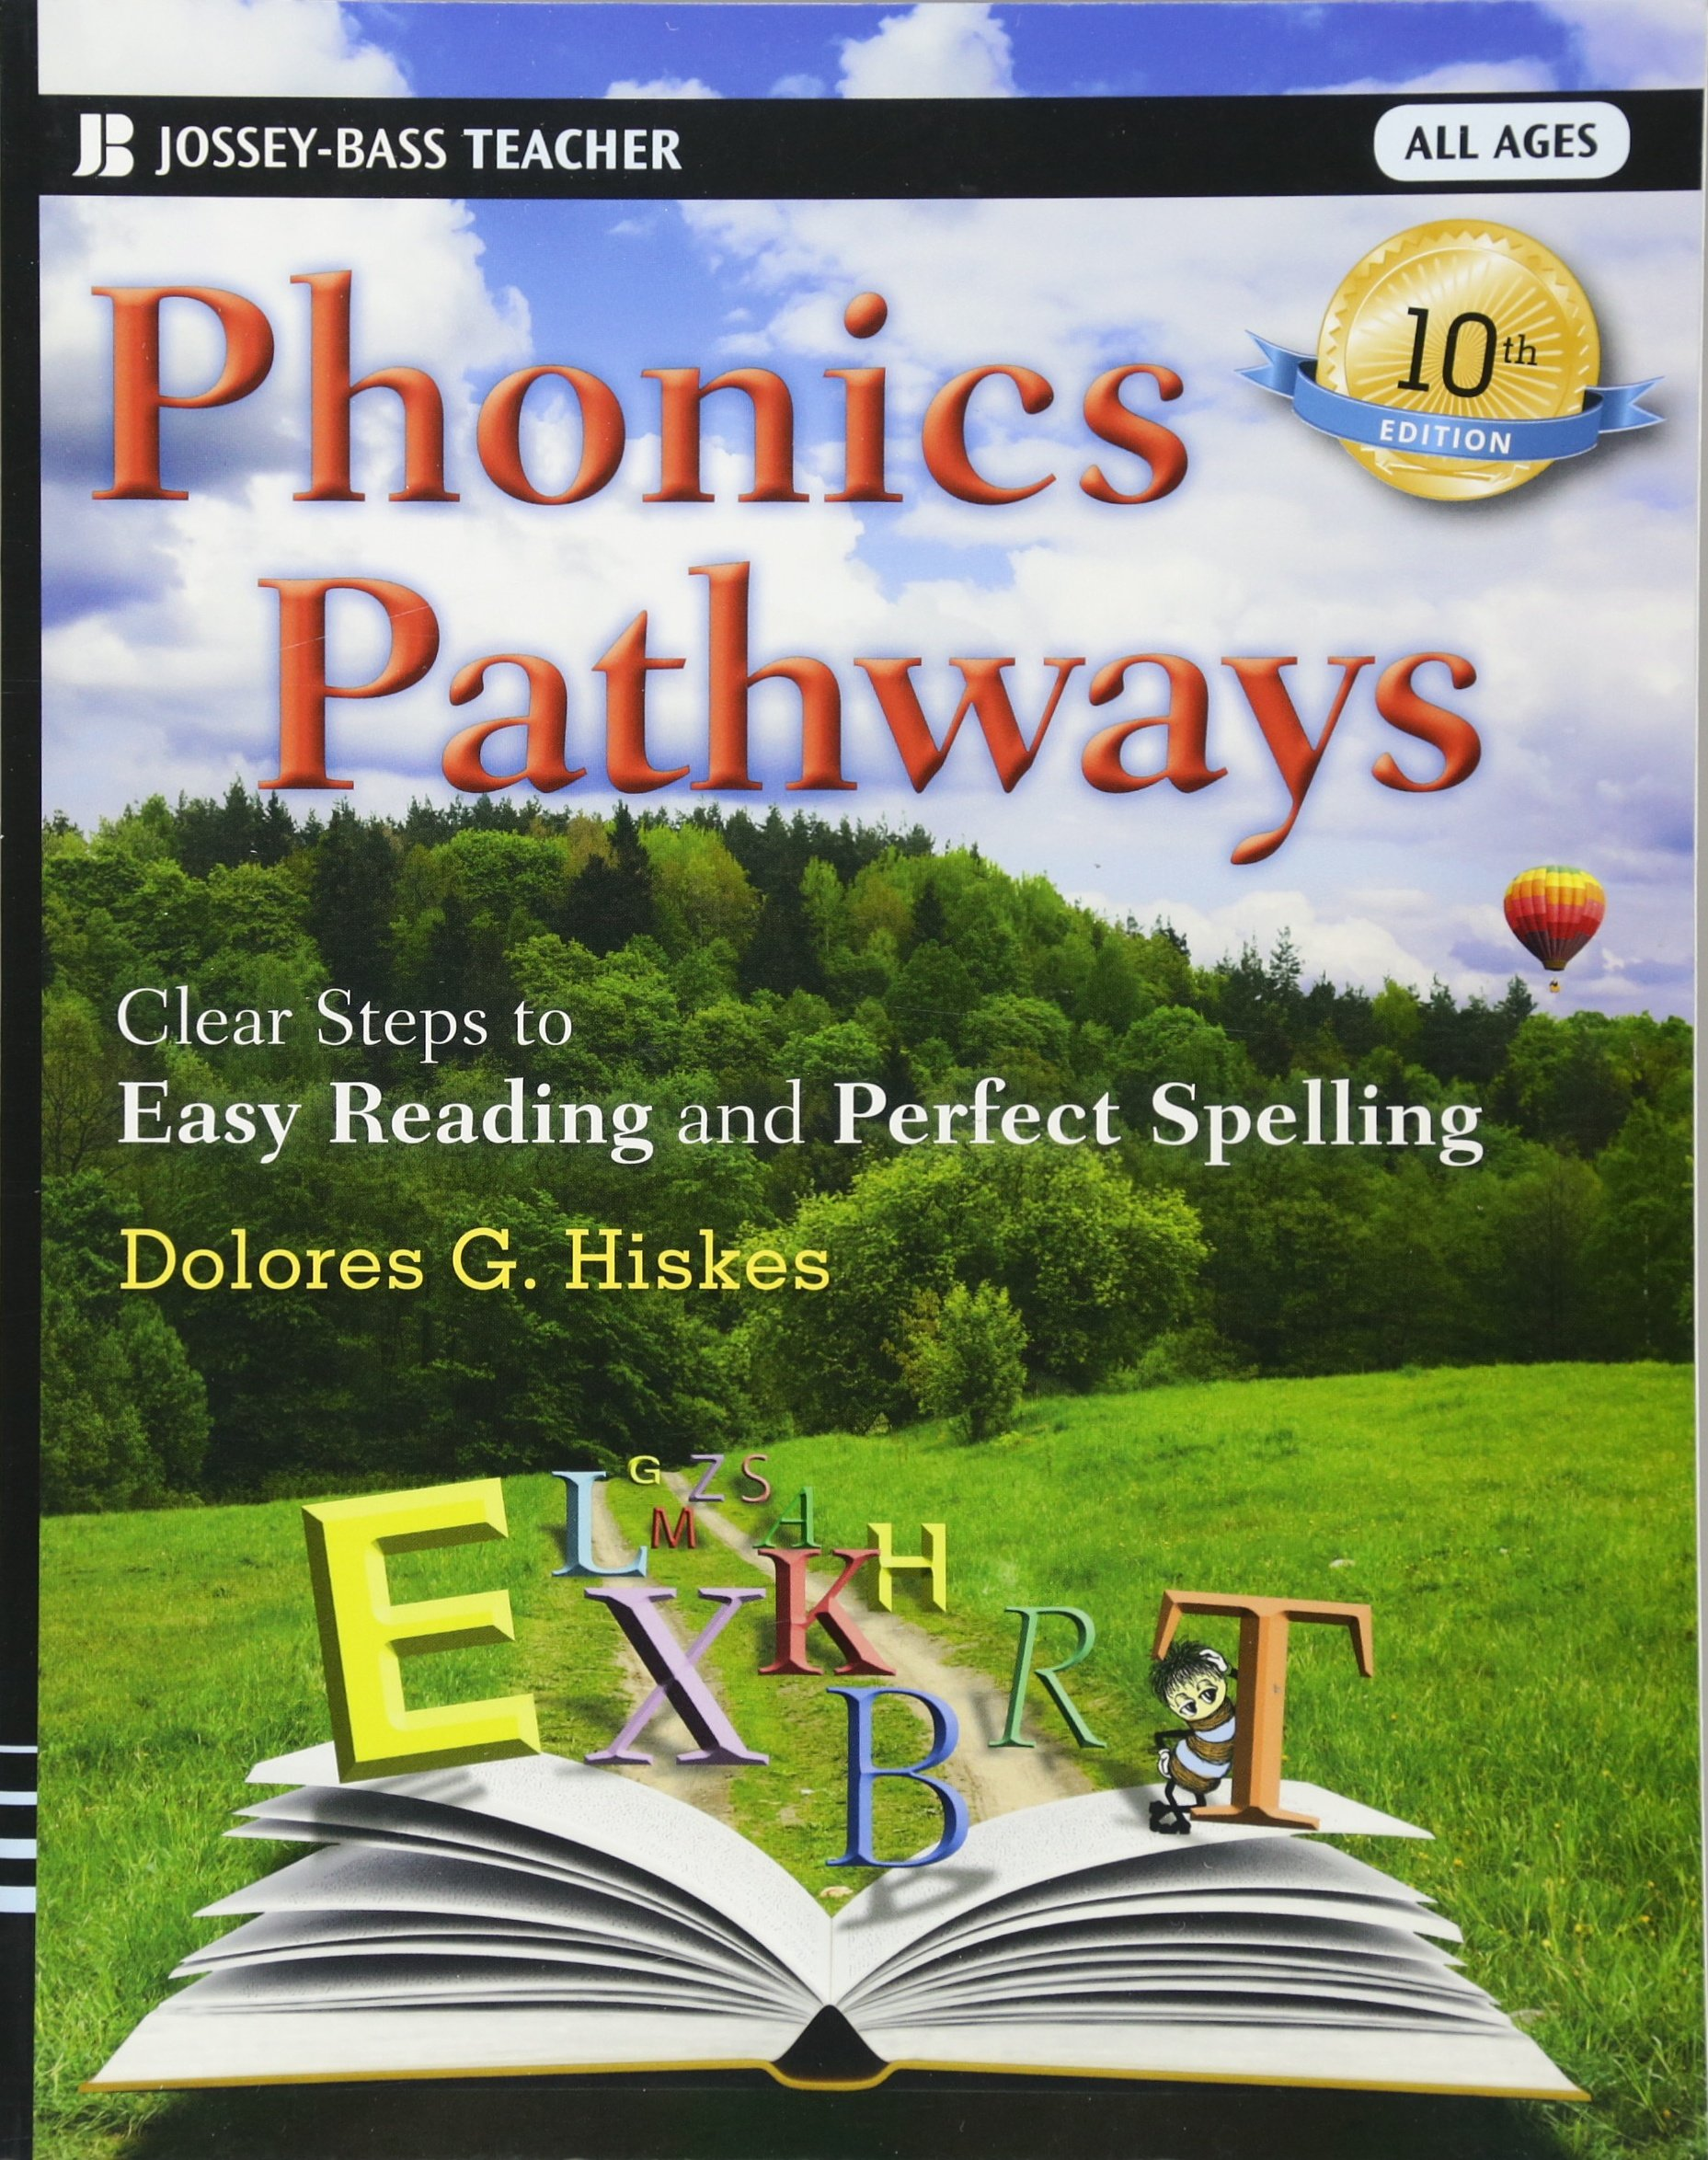 Phonics Pathways: Clear Steps to Easy Reading and Perfect Spelling (Jossey-Bass Teacher)